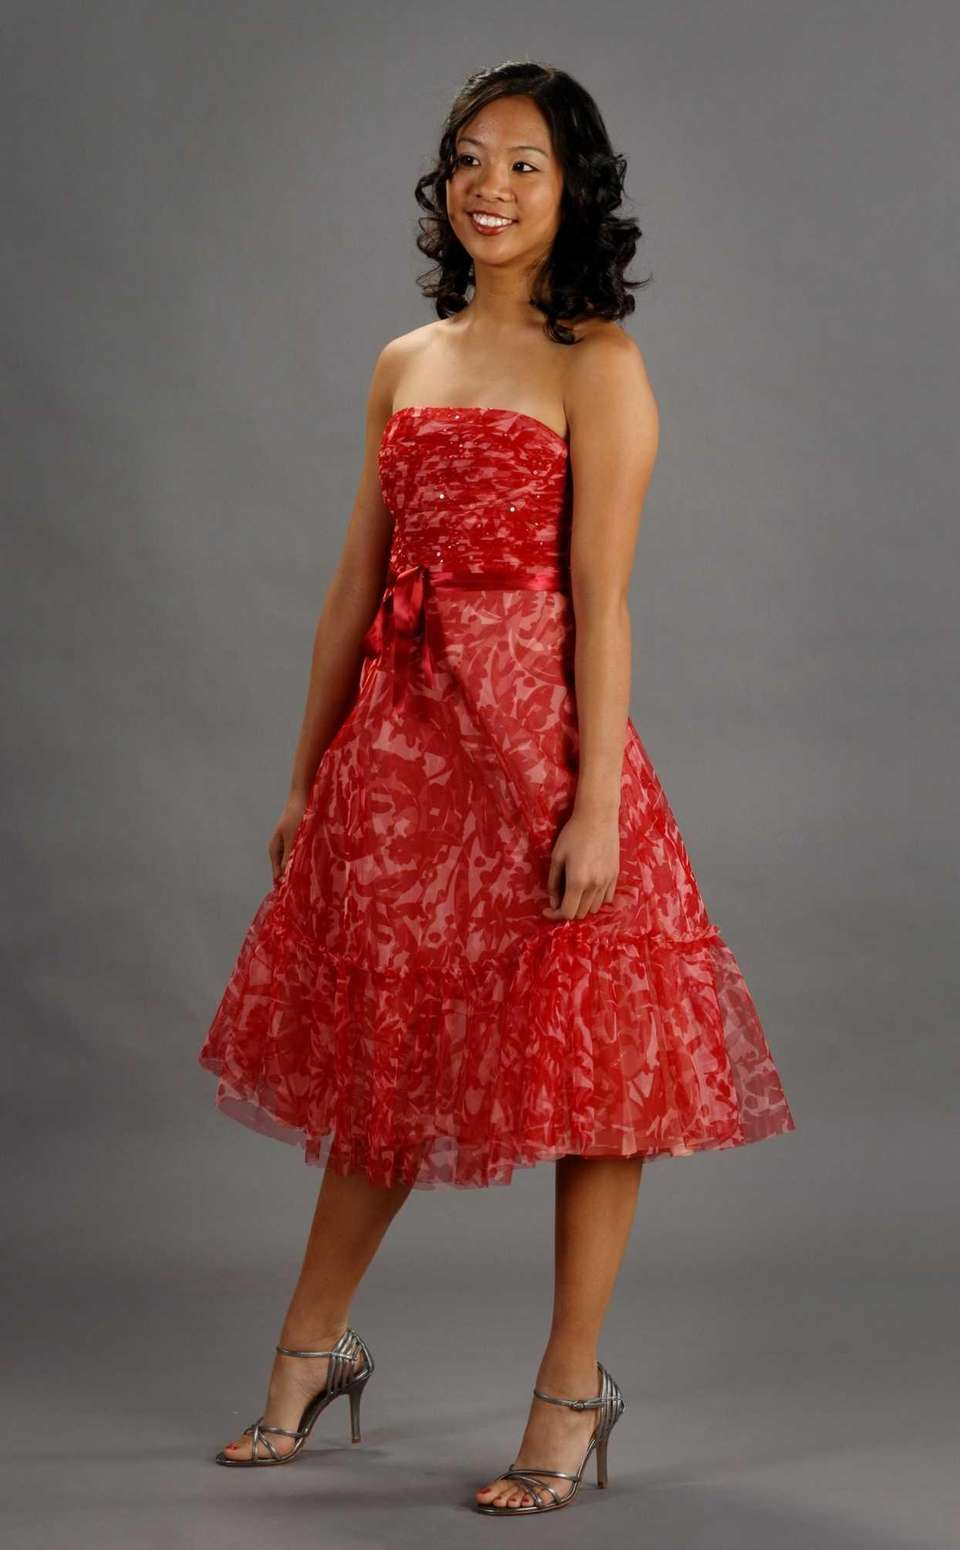 Bianca Velayo, the winner of Project Prom 2006.